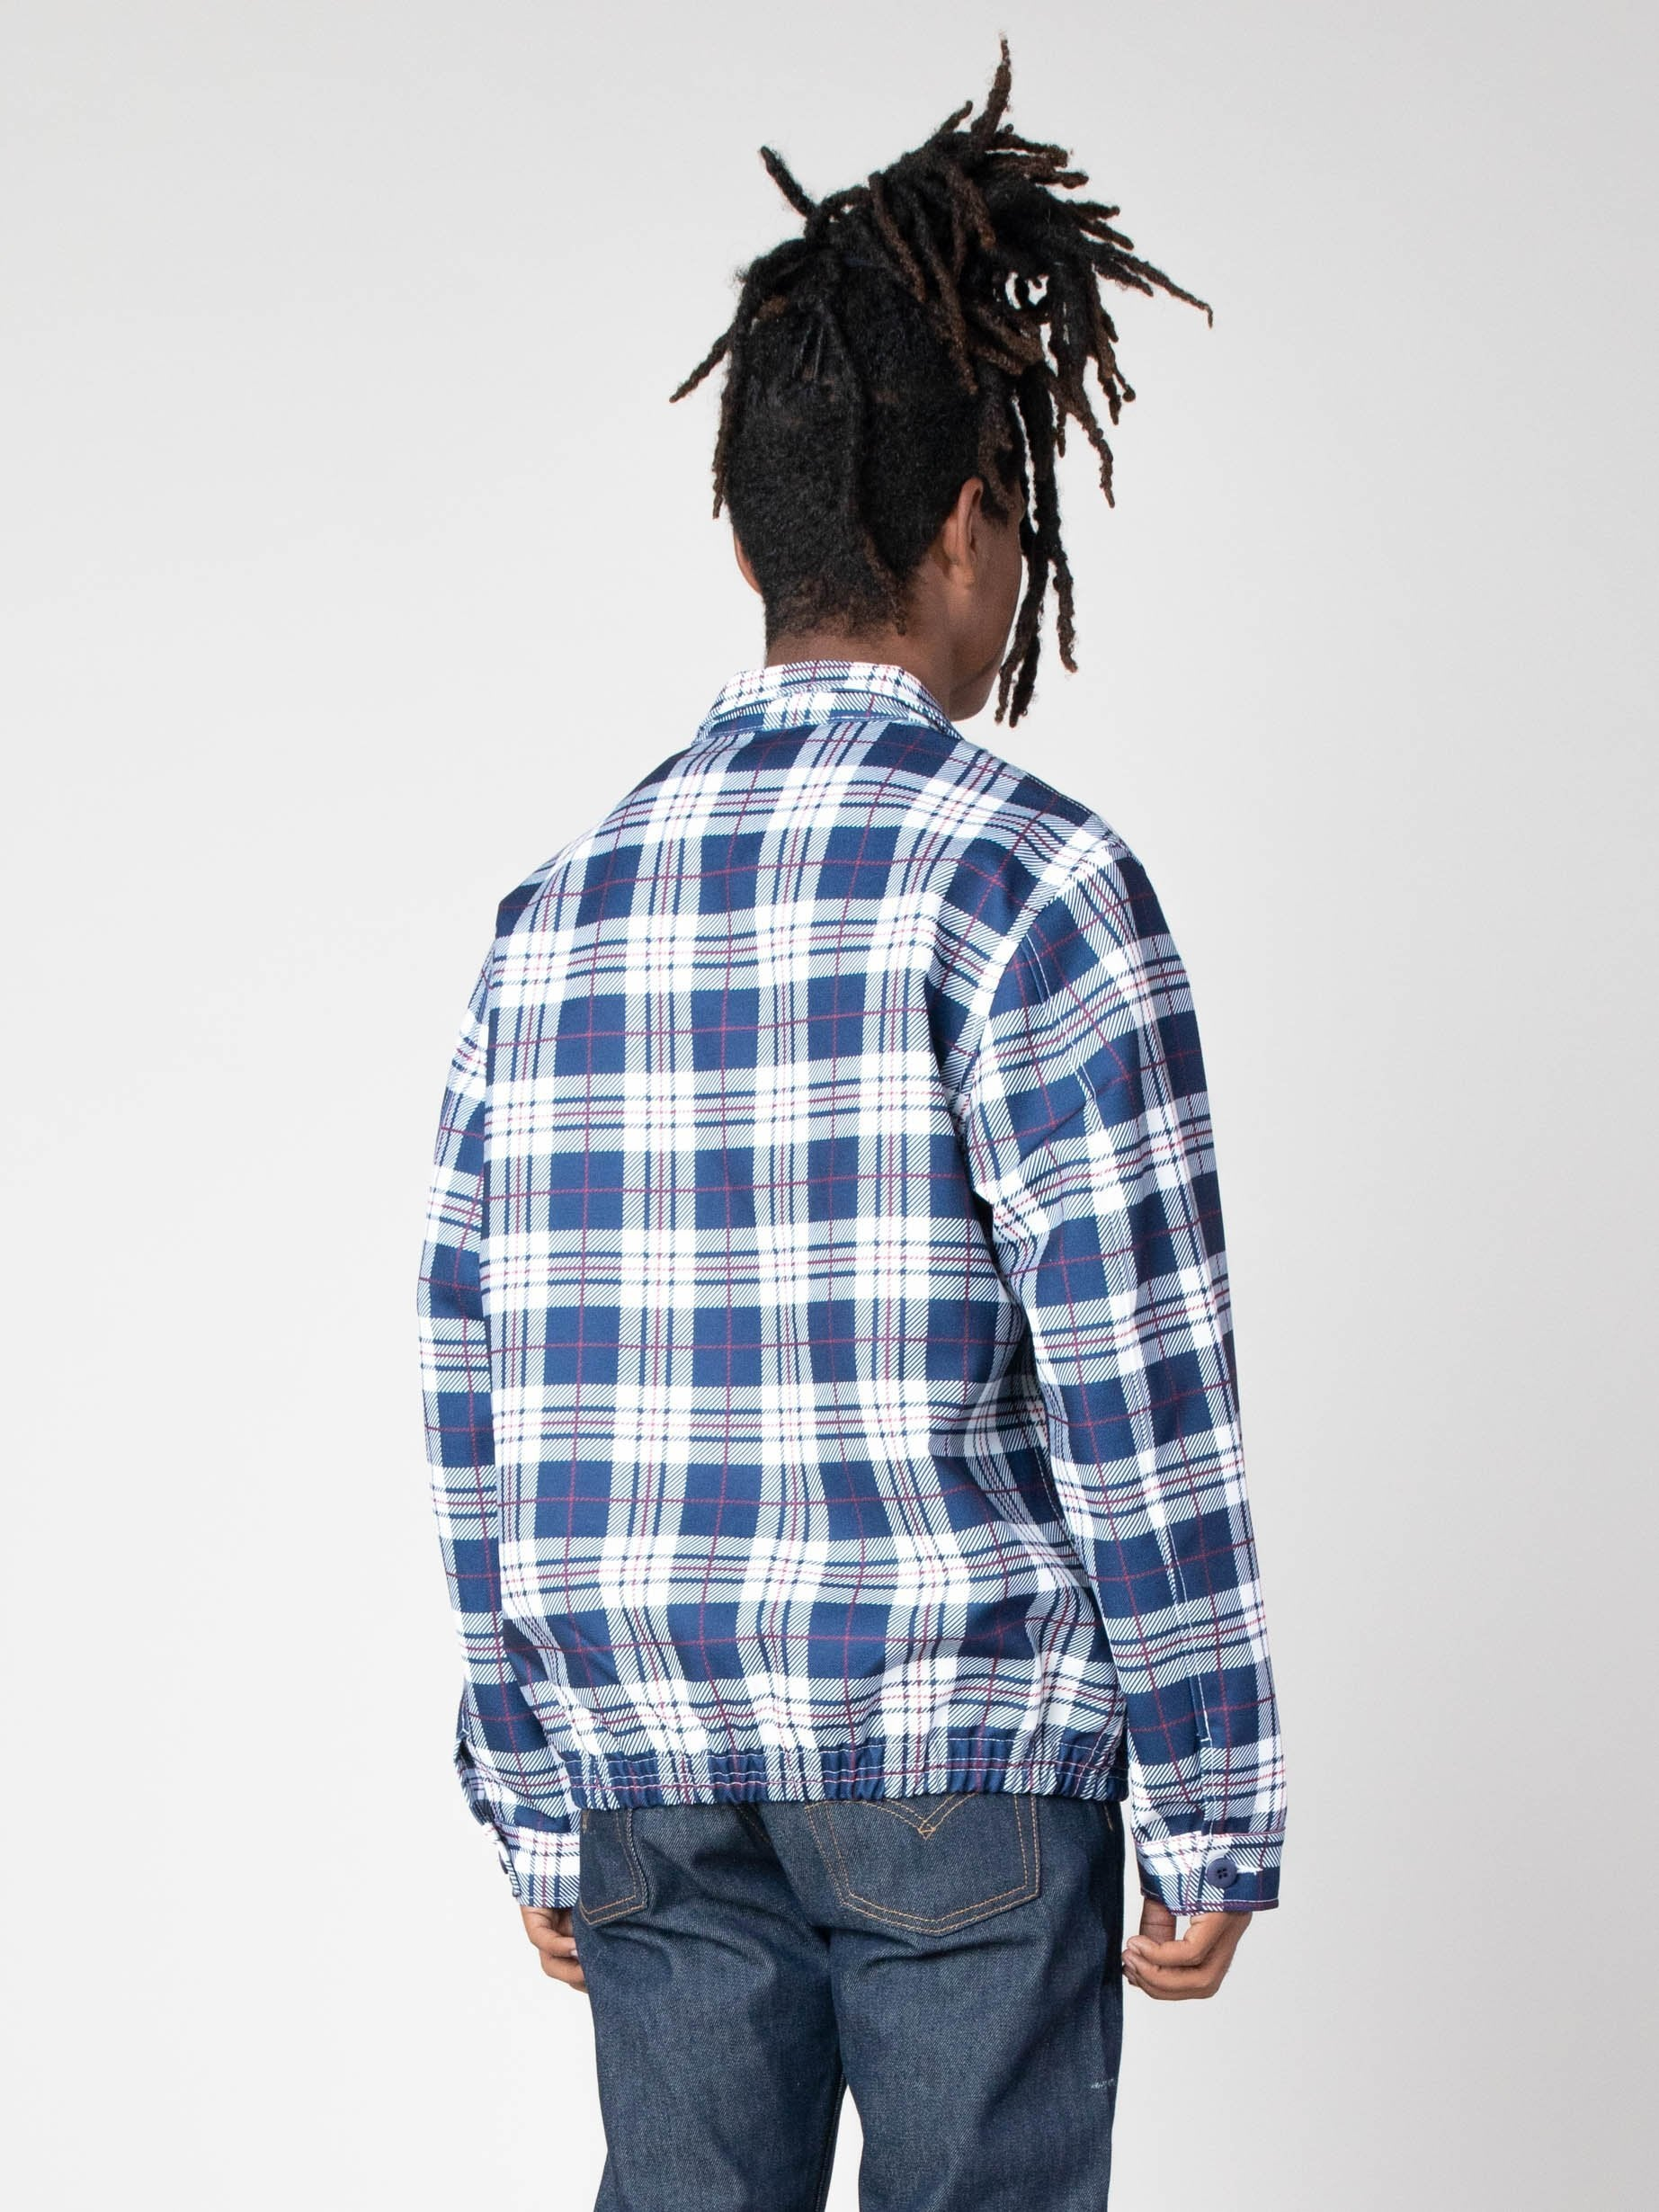 Navy/White Picture Perfect Tartan Jacket 5